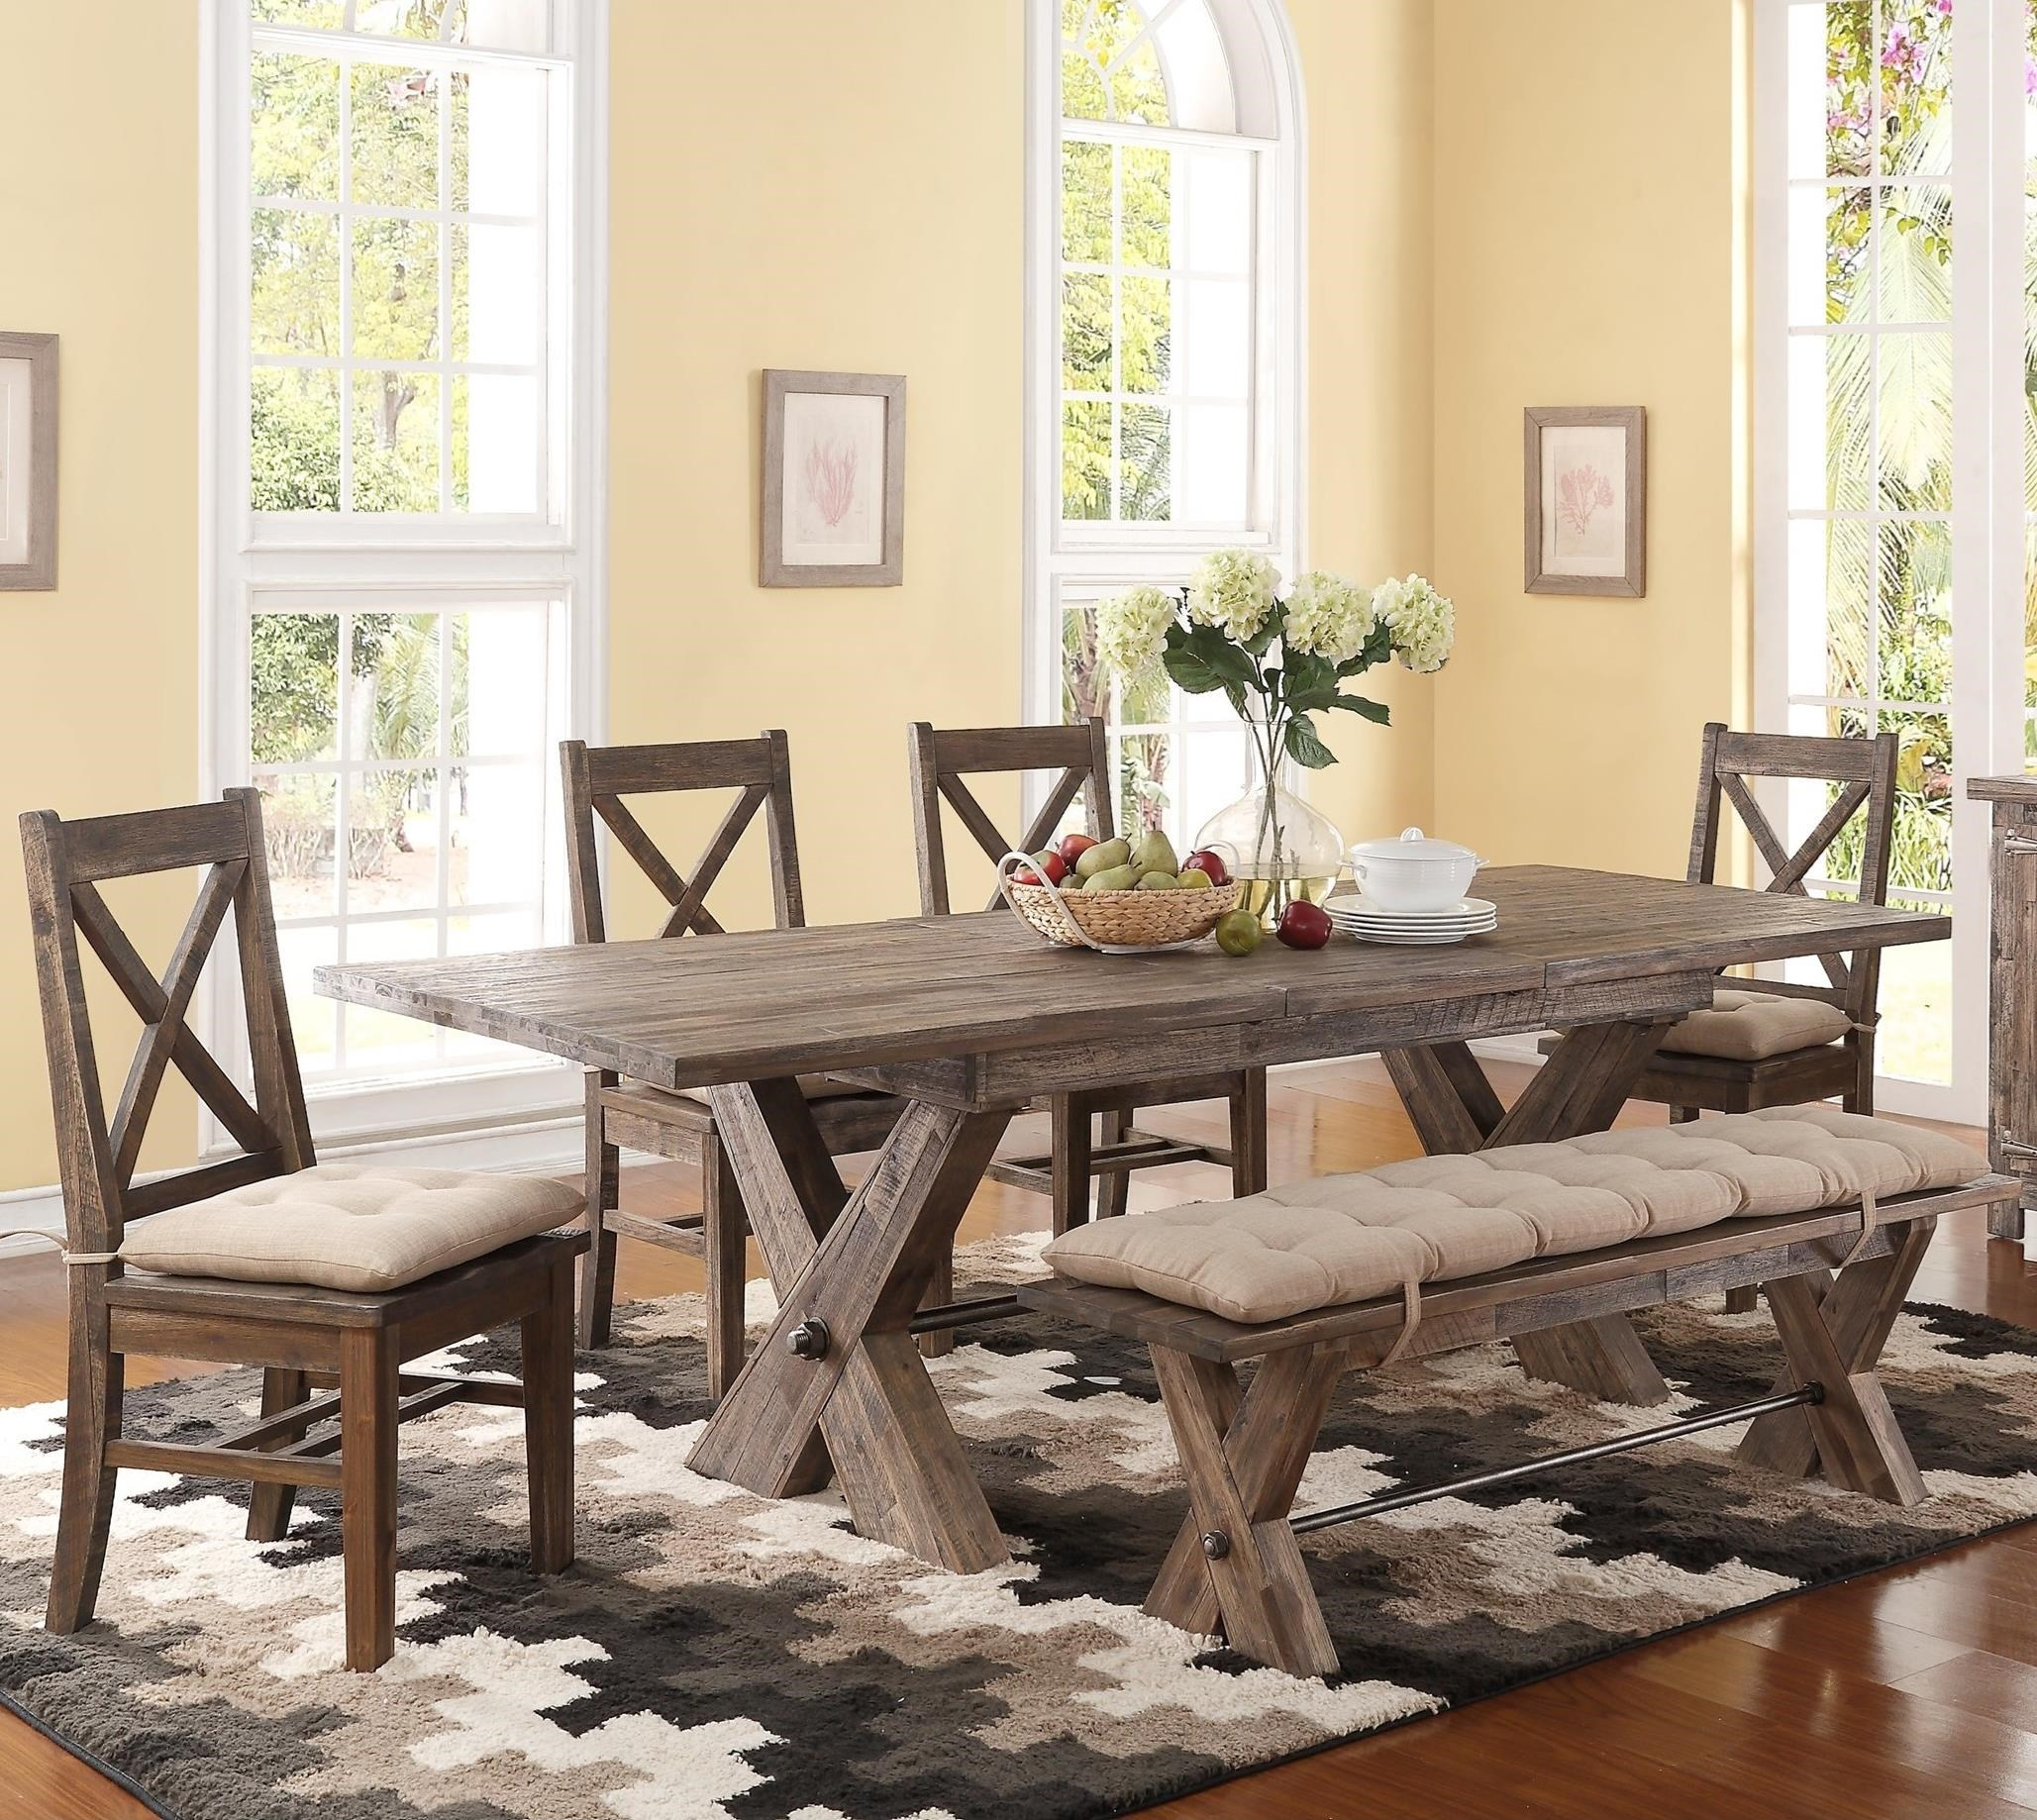 New Classic Tuscany Park 6 Piece Trestle Dining Table and ...